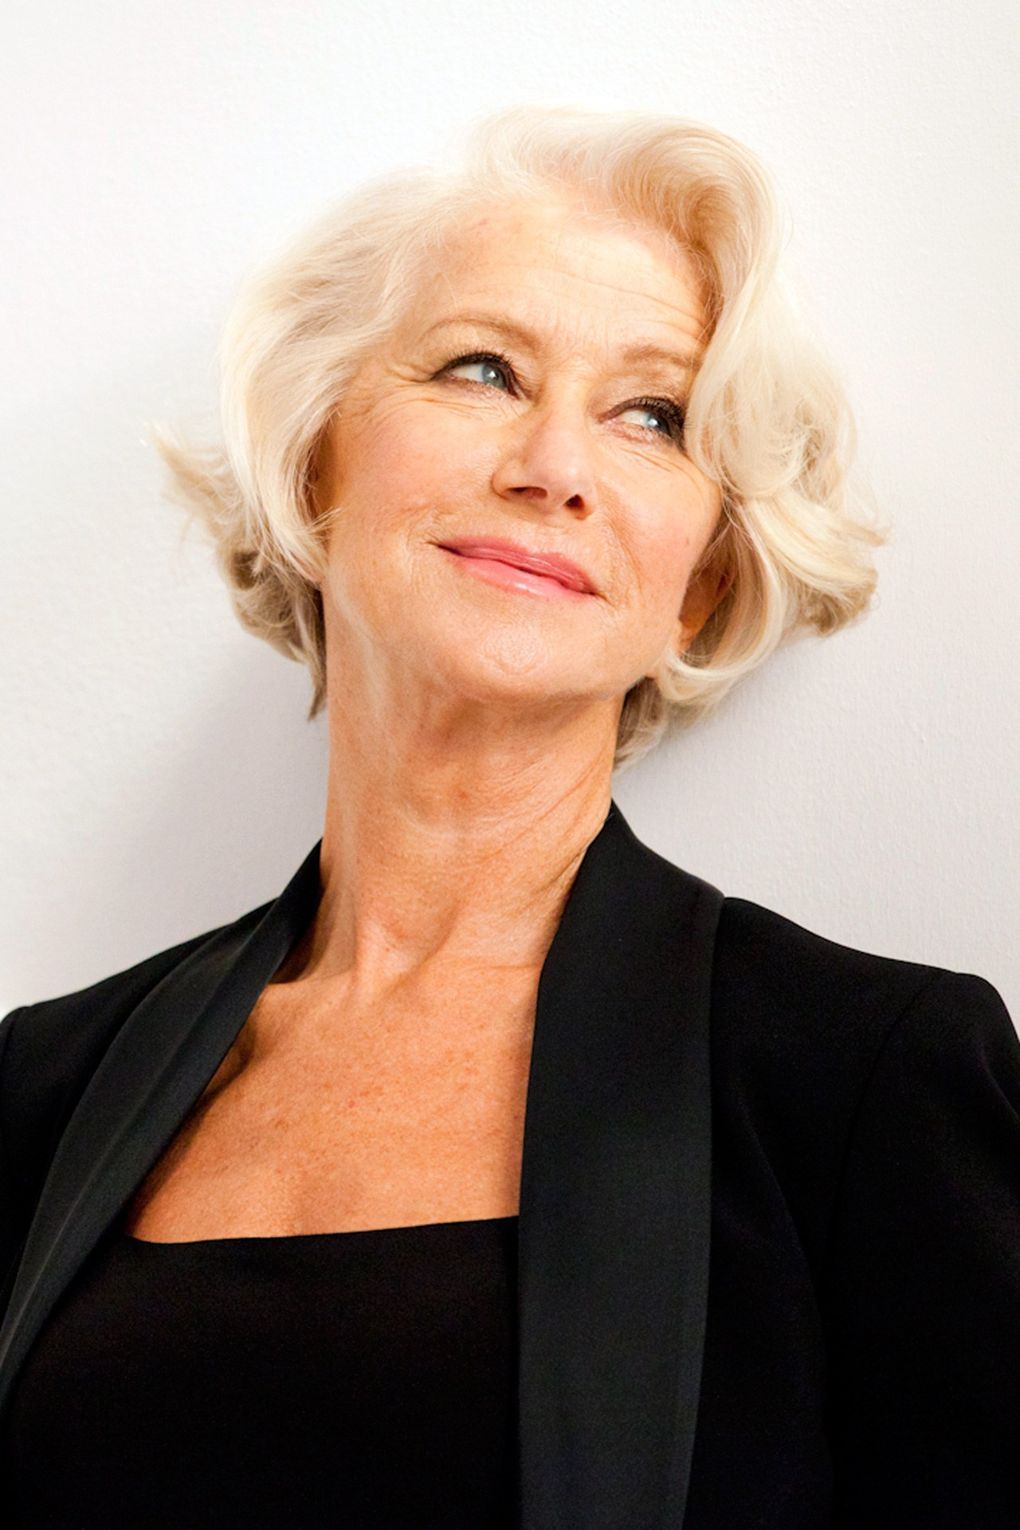 Helen Mirren For Loral Actresses Ranges And Face